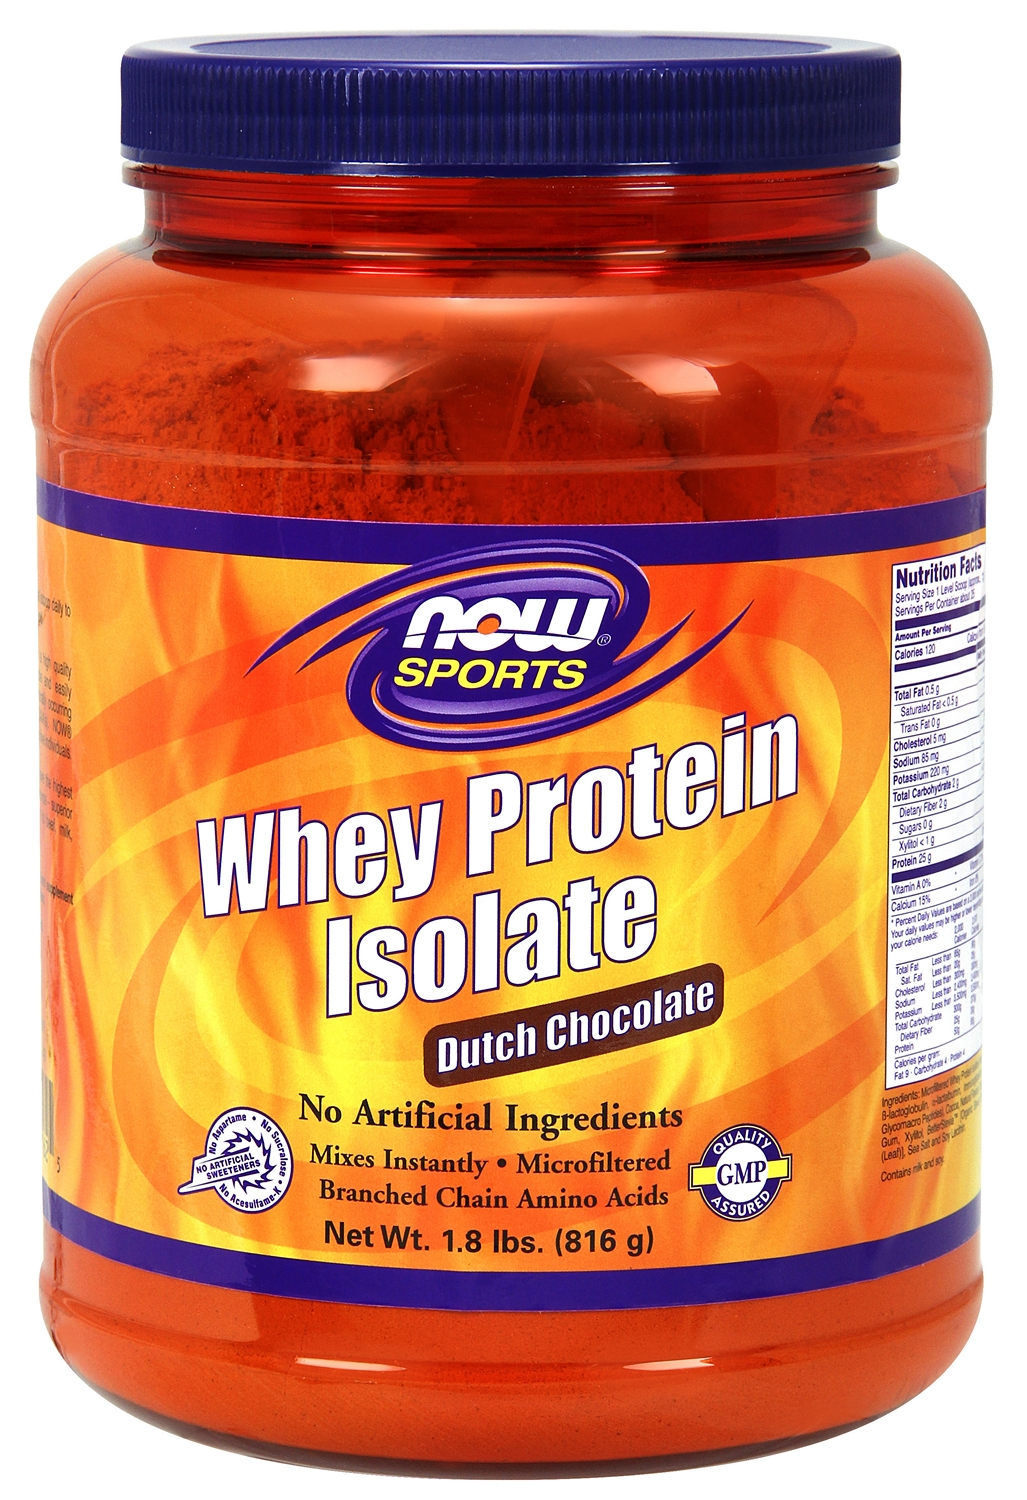 Whey Protein Isolate Dutch Chocolate 1.8 lbs (816 g) by NOW